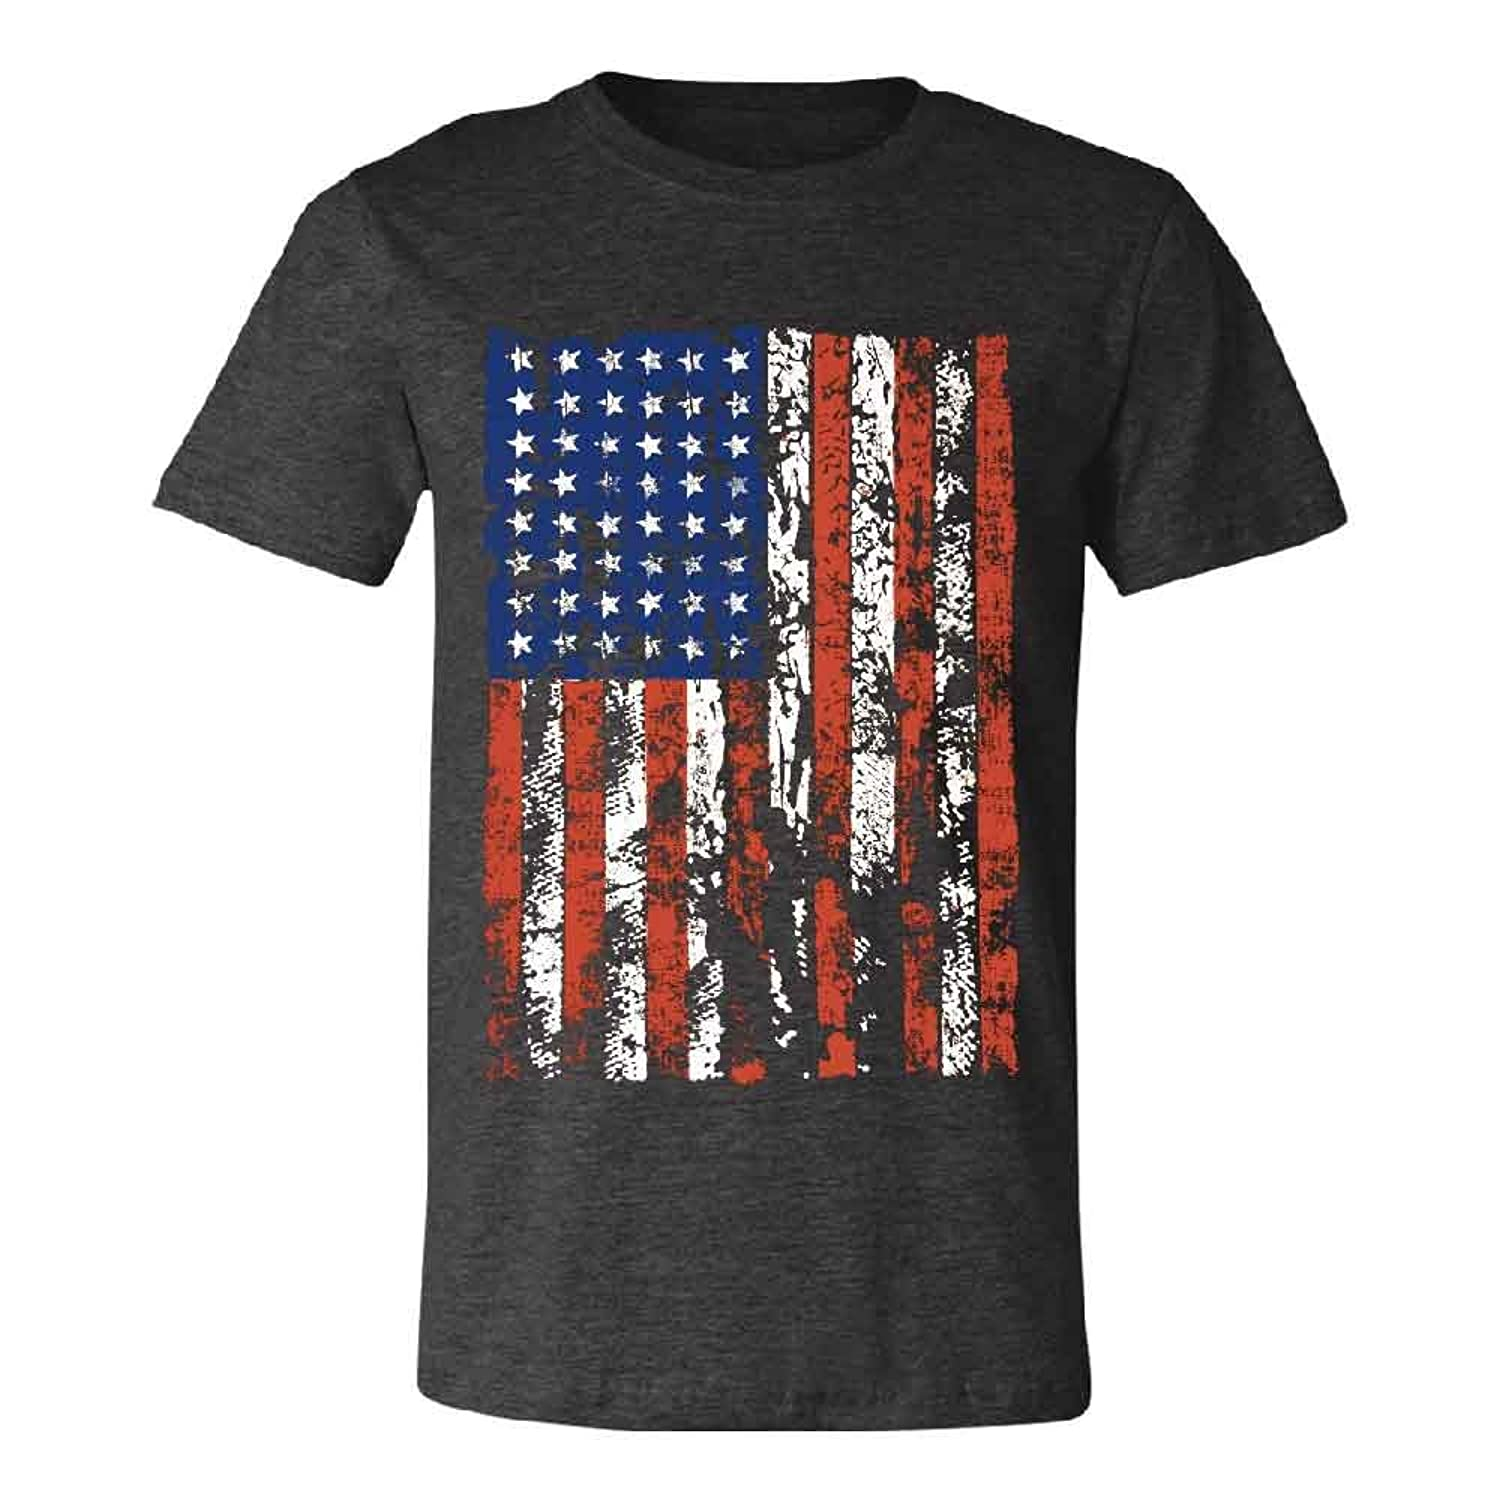 Distressed American Flag Men's T-shirt Vintage USA Flag 4th of July Tee